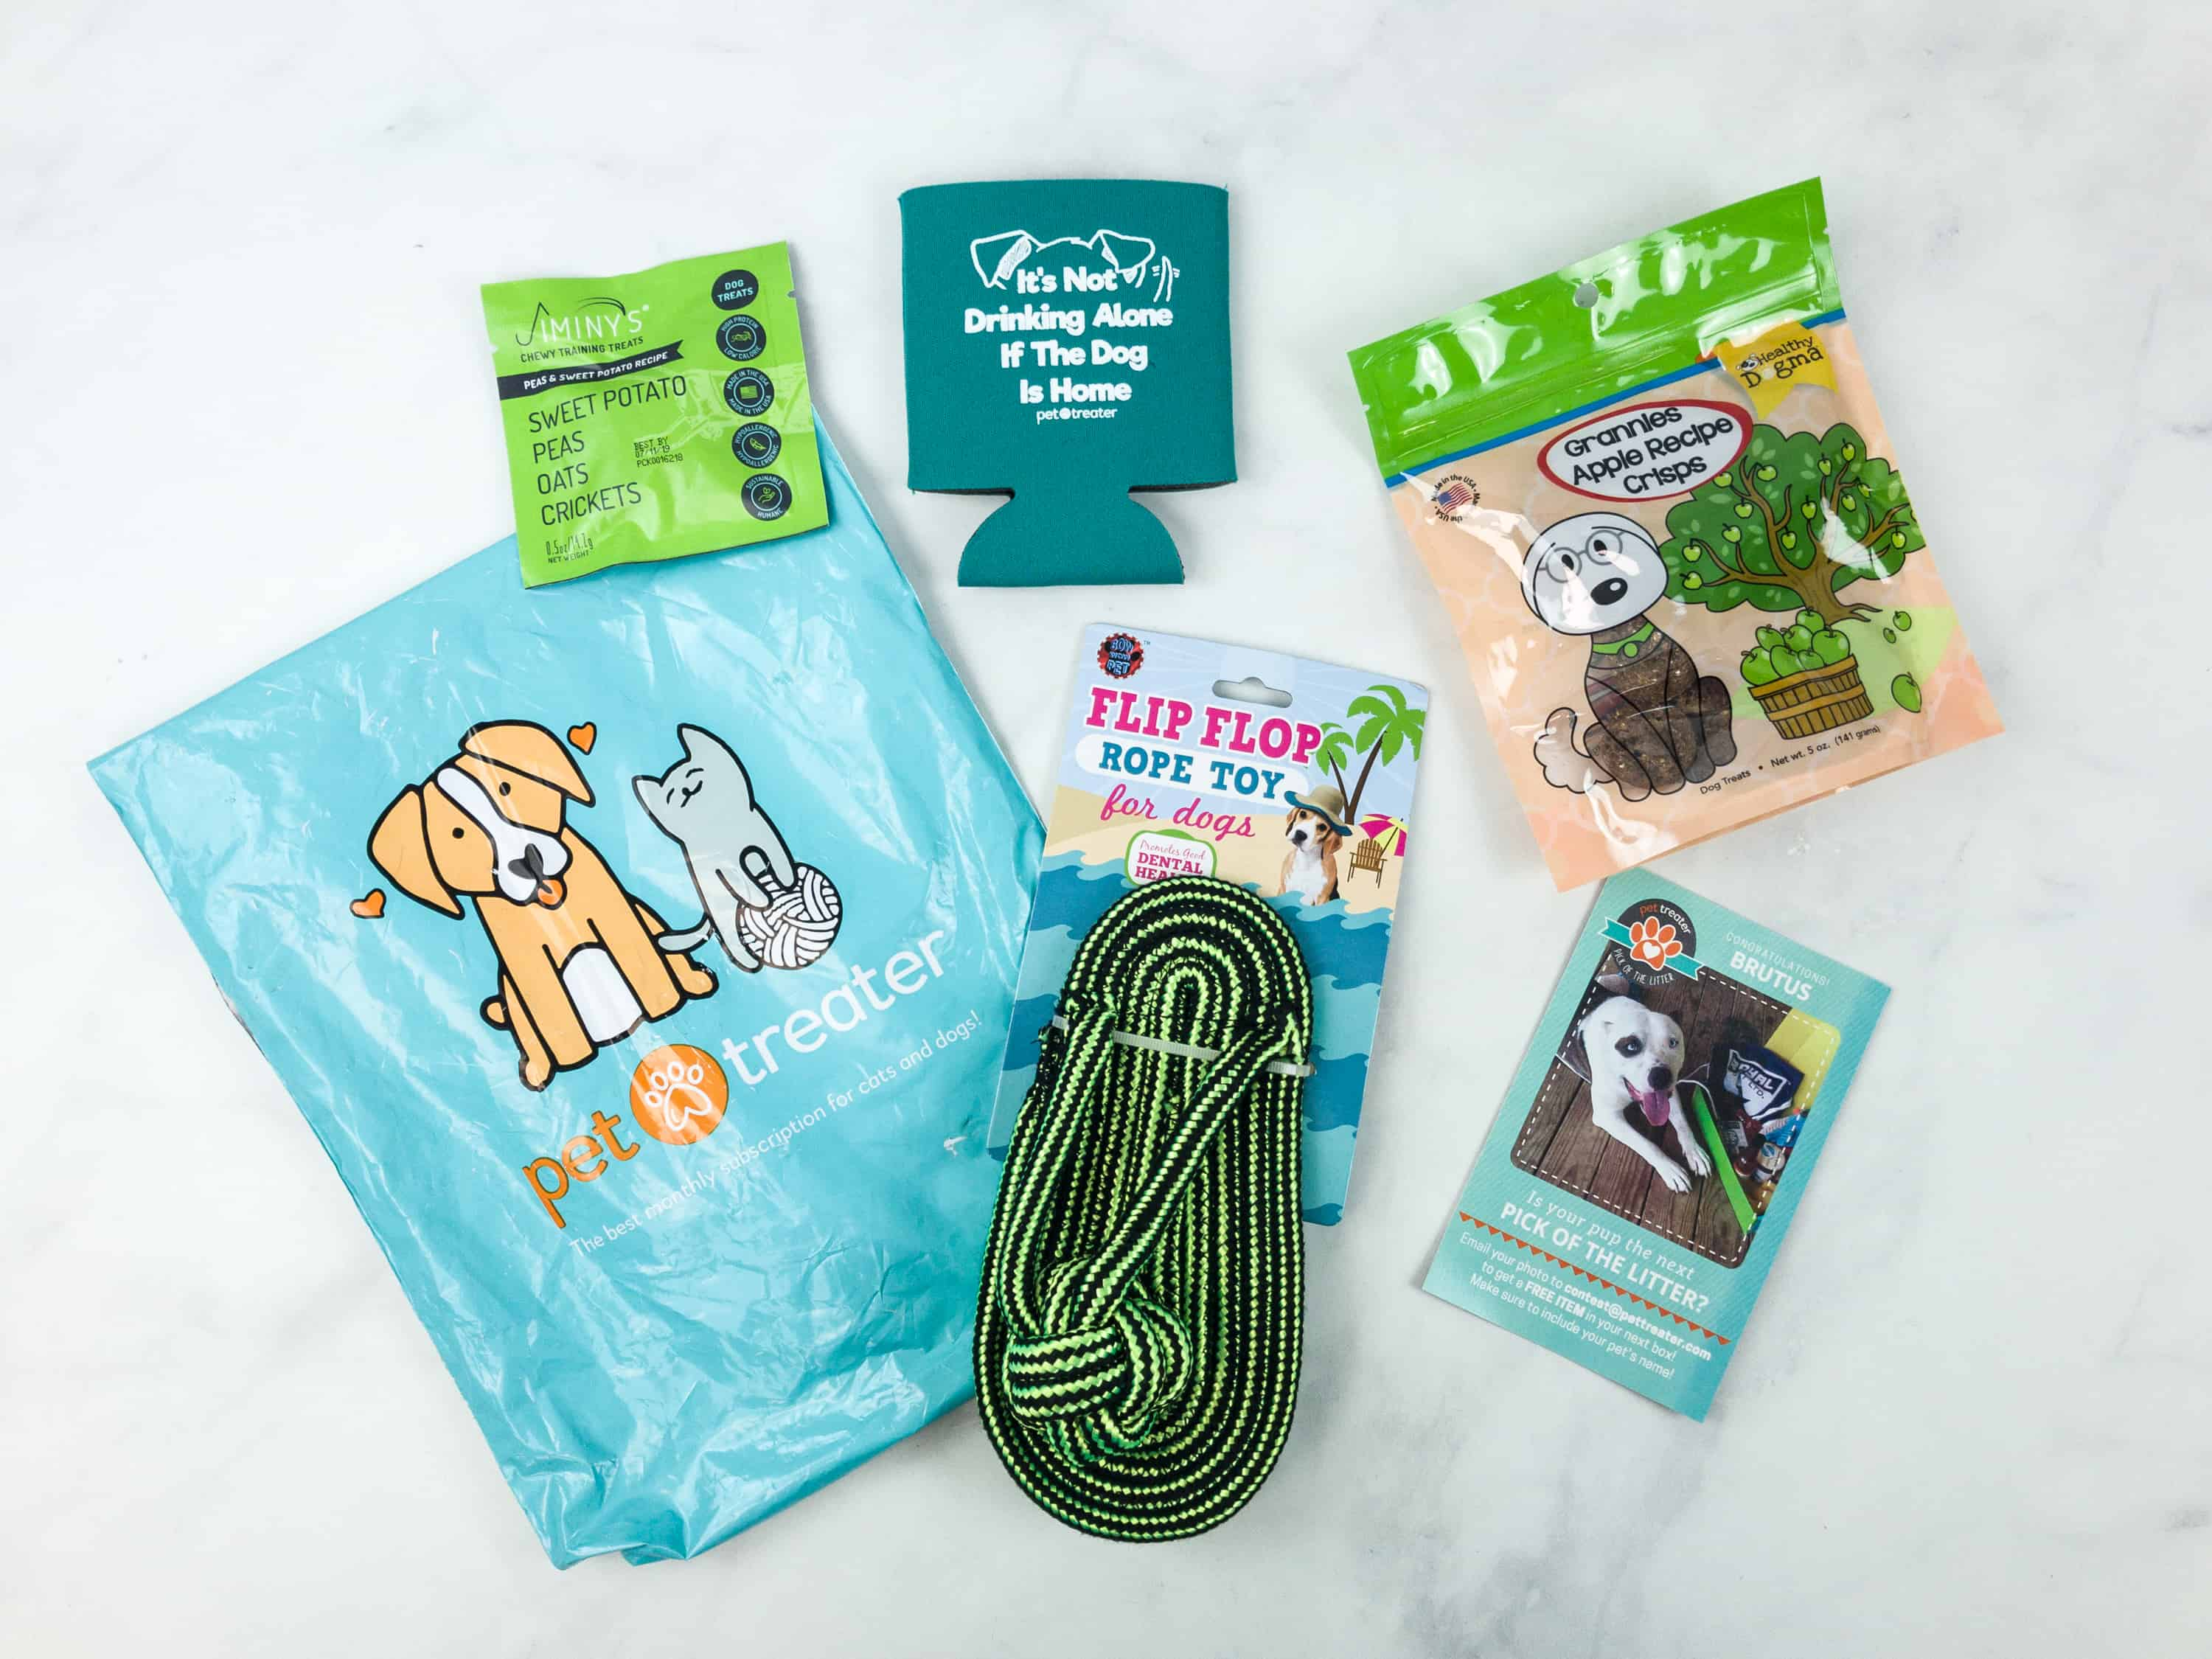 Pet Treater Dog Pack August 2018 Subscription Box Review + 50% Off Coupon!